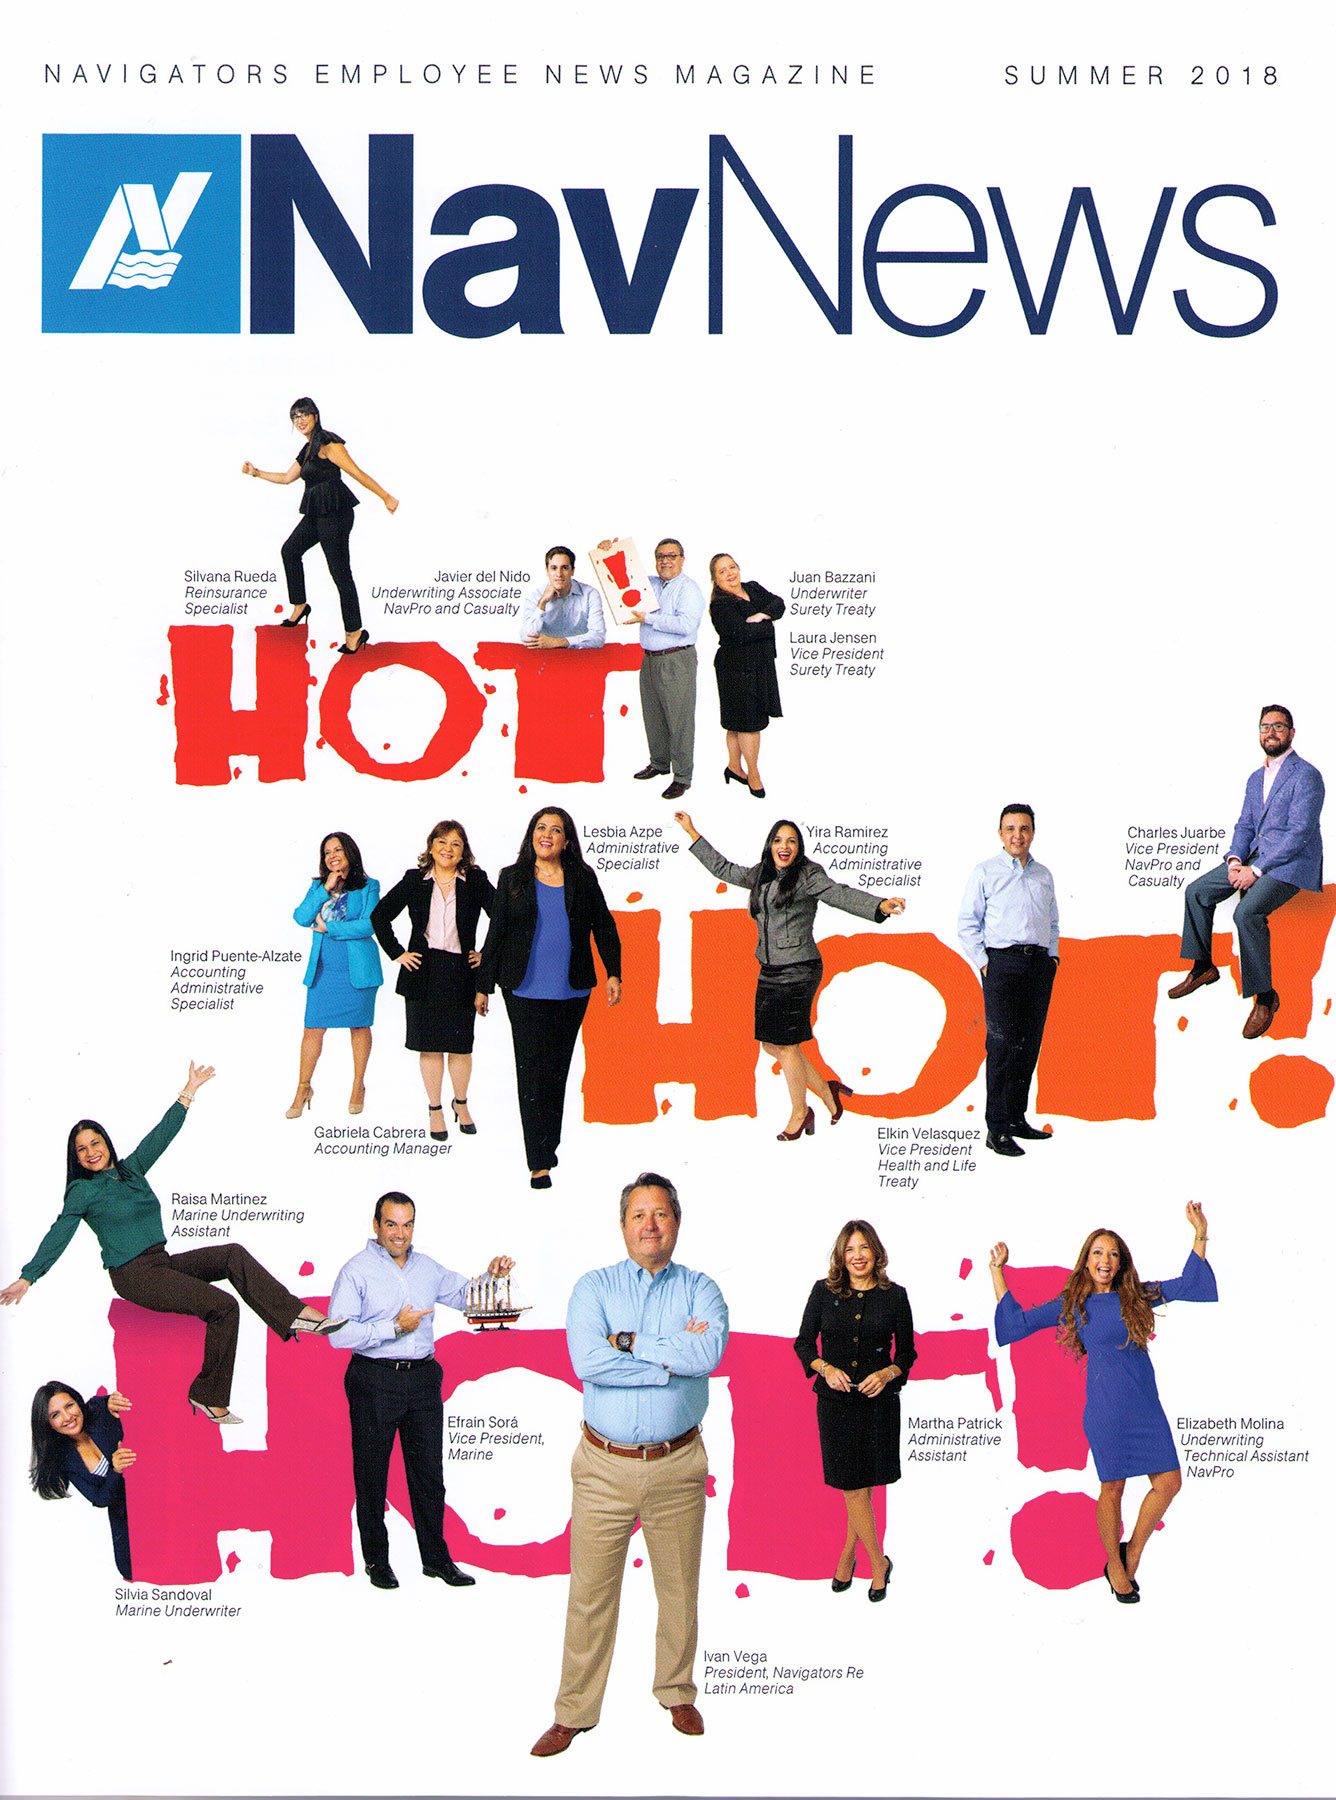 Corporate Editorial Photographer Jason Nuttle photographed the cover for NavNews